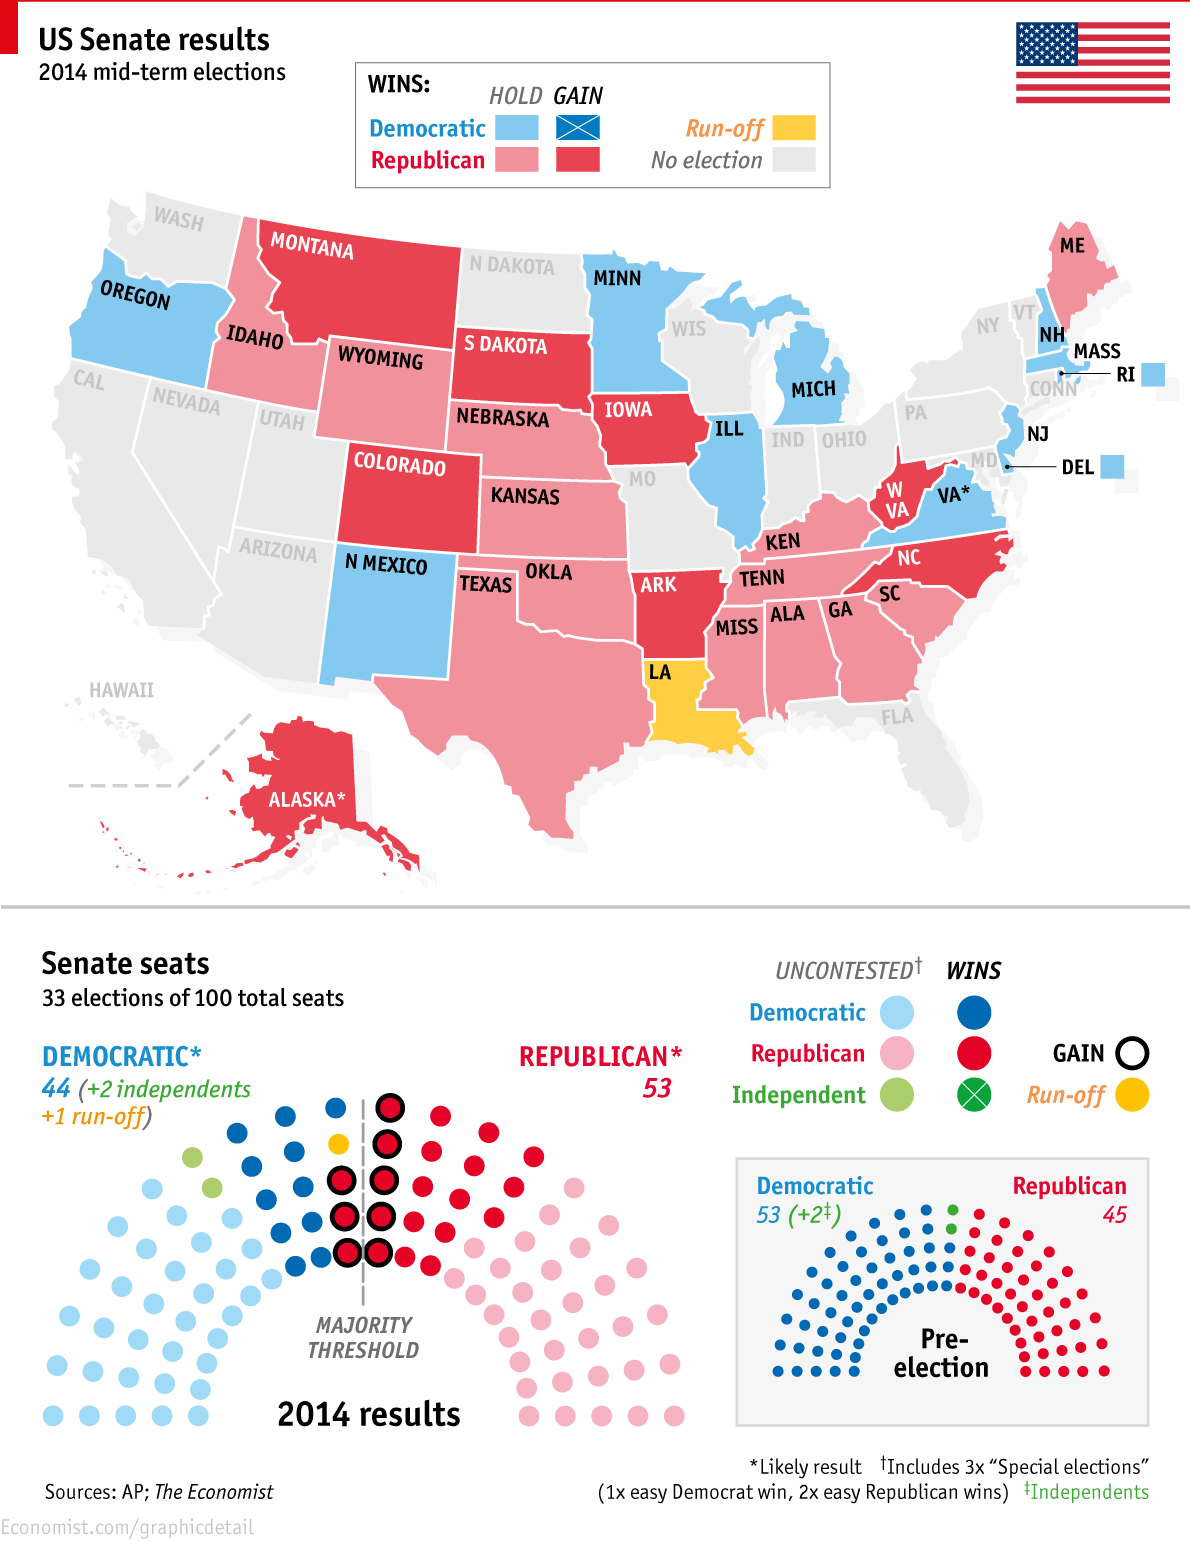 The Republicans win the Senate - US 2014 mid-term election results